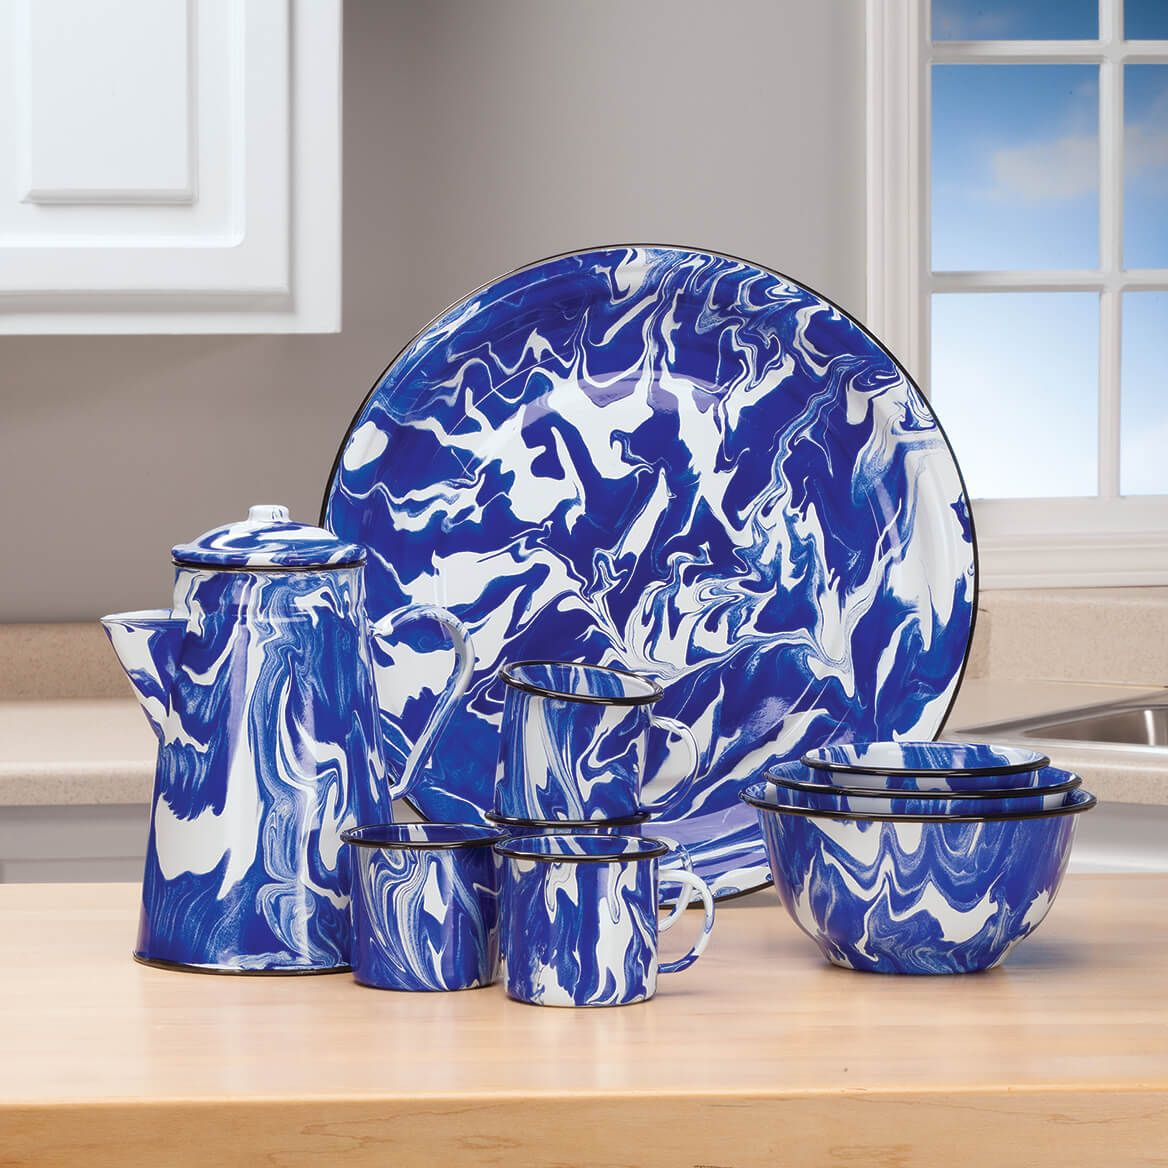 Blue Marble Enamelware Set of 4 Mugs by Home Marketplace-368311